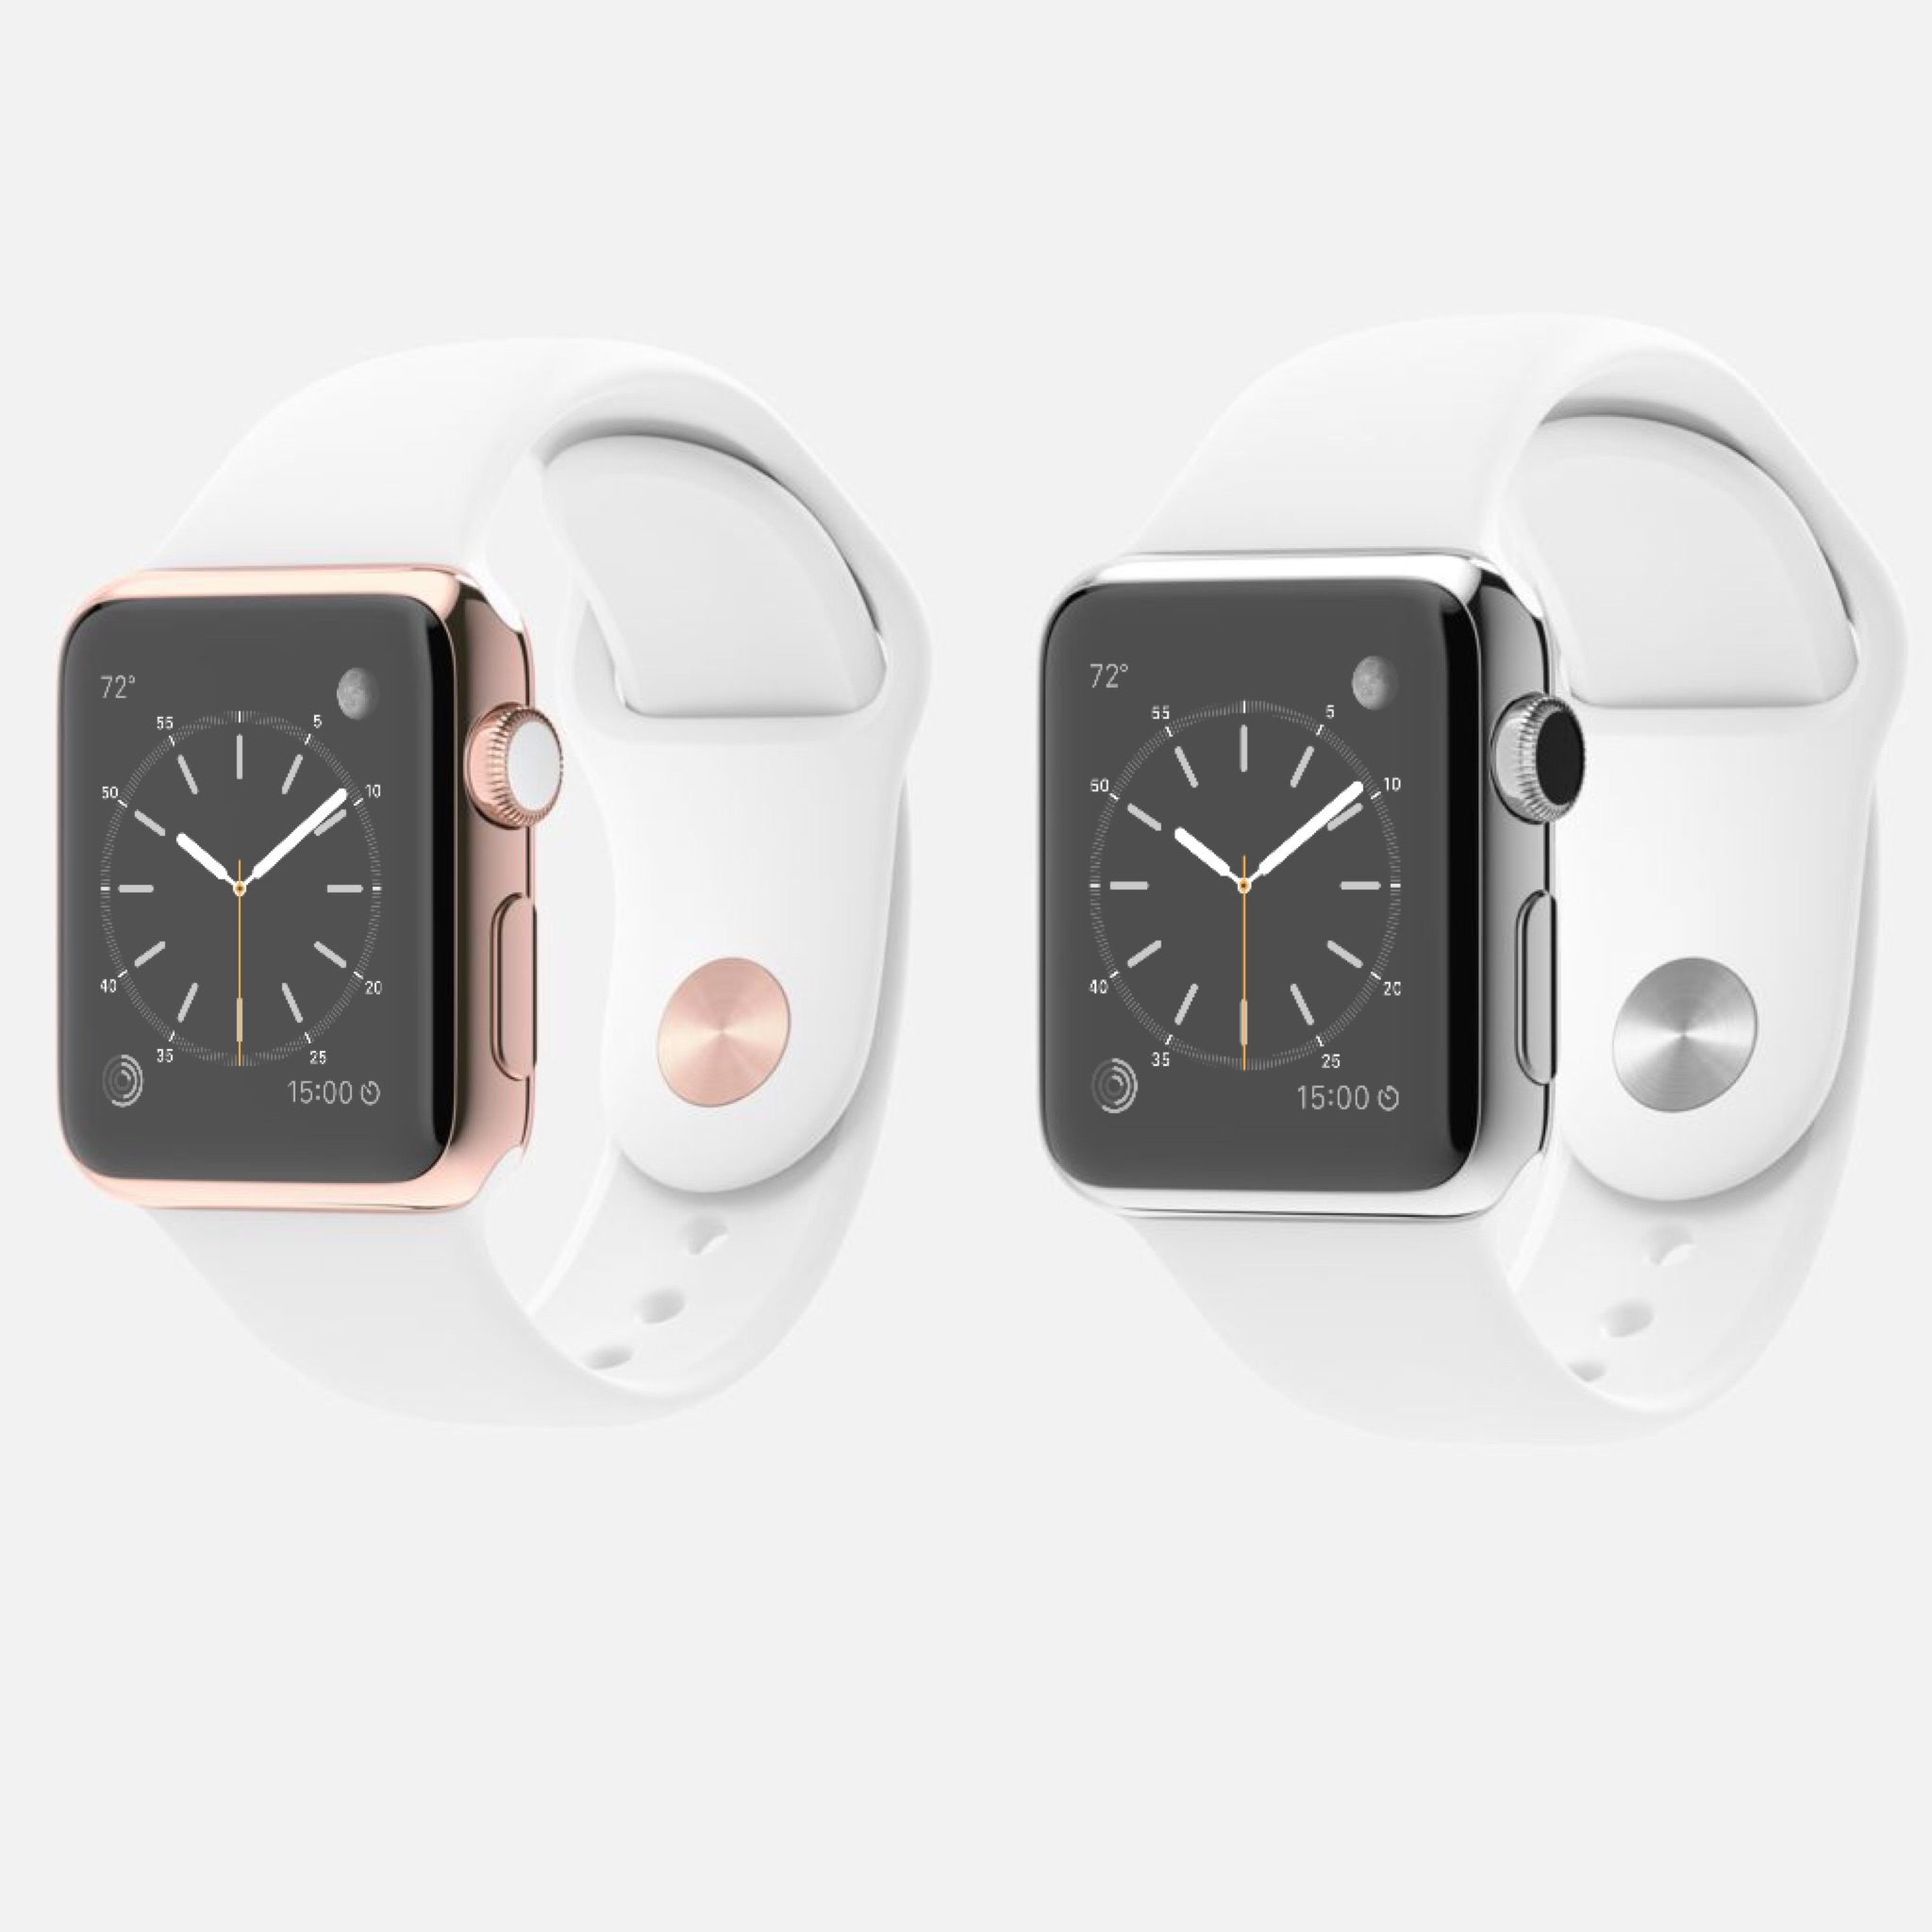 Apple Watch Edition and Apple Watch